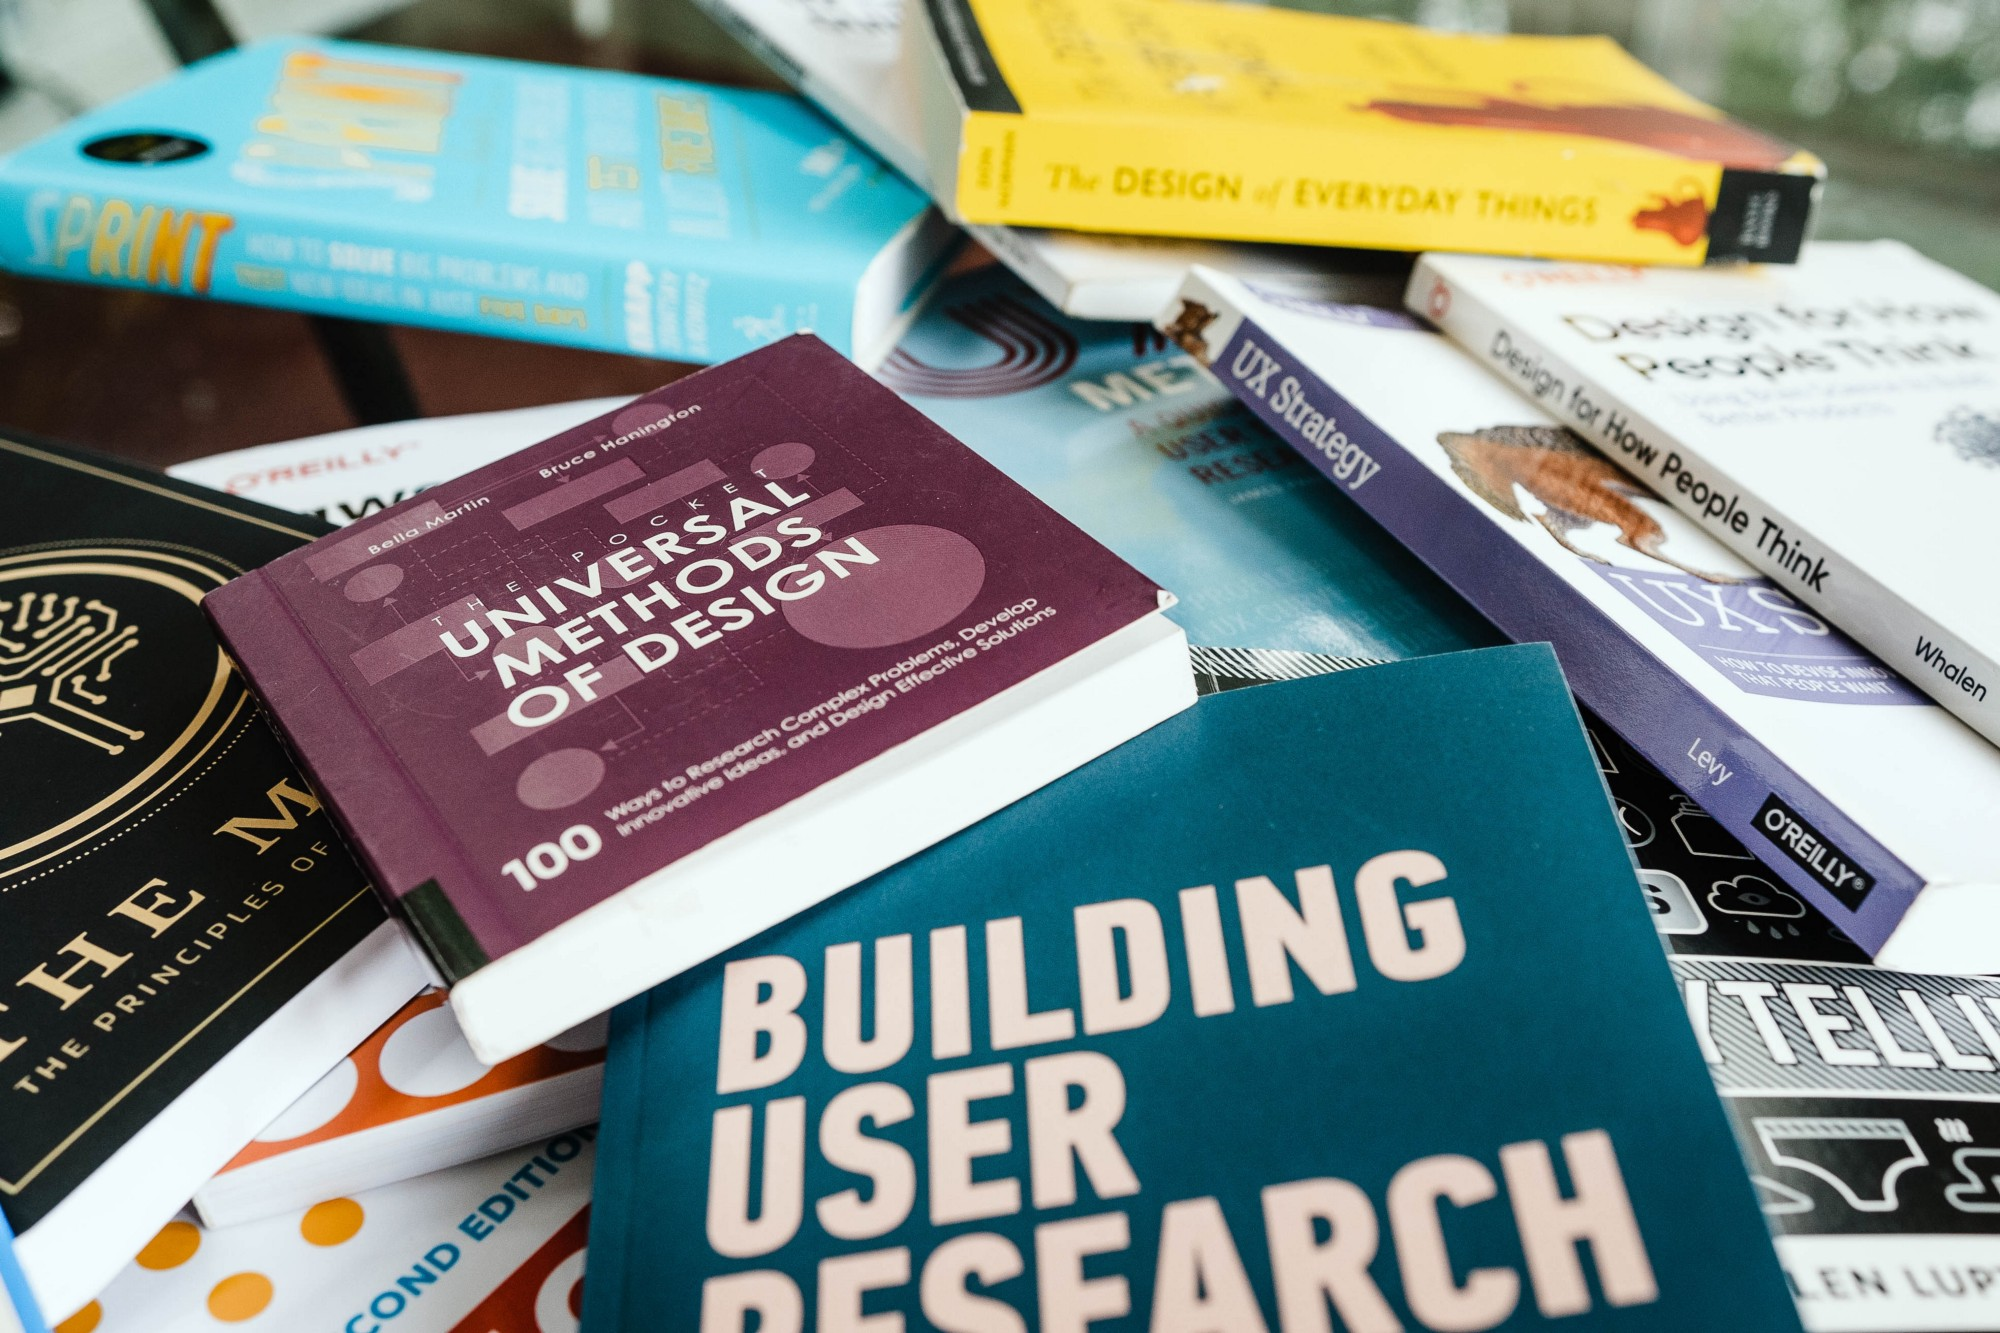 A messy pile of books about UX, including Universal Methods of Design and Building User Research